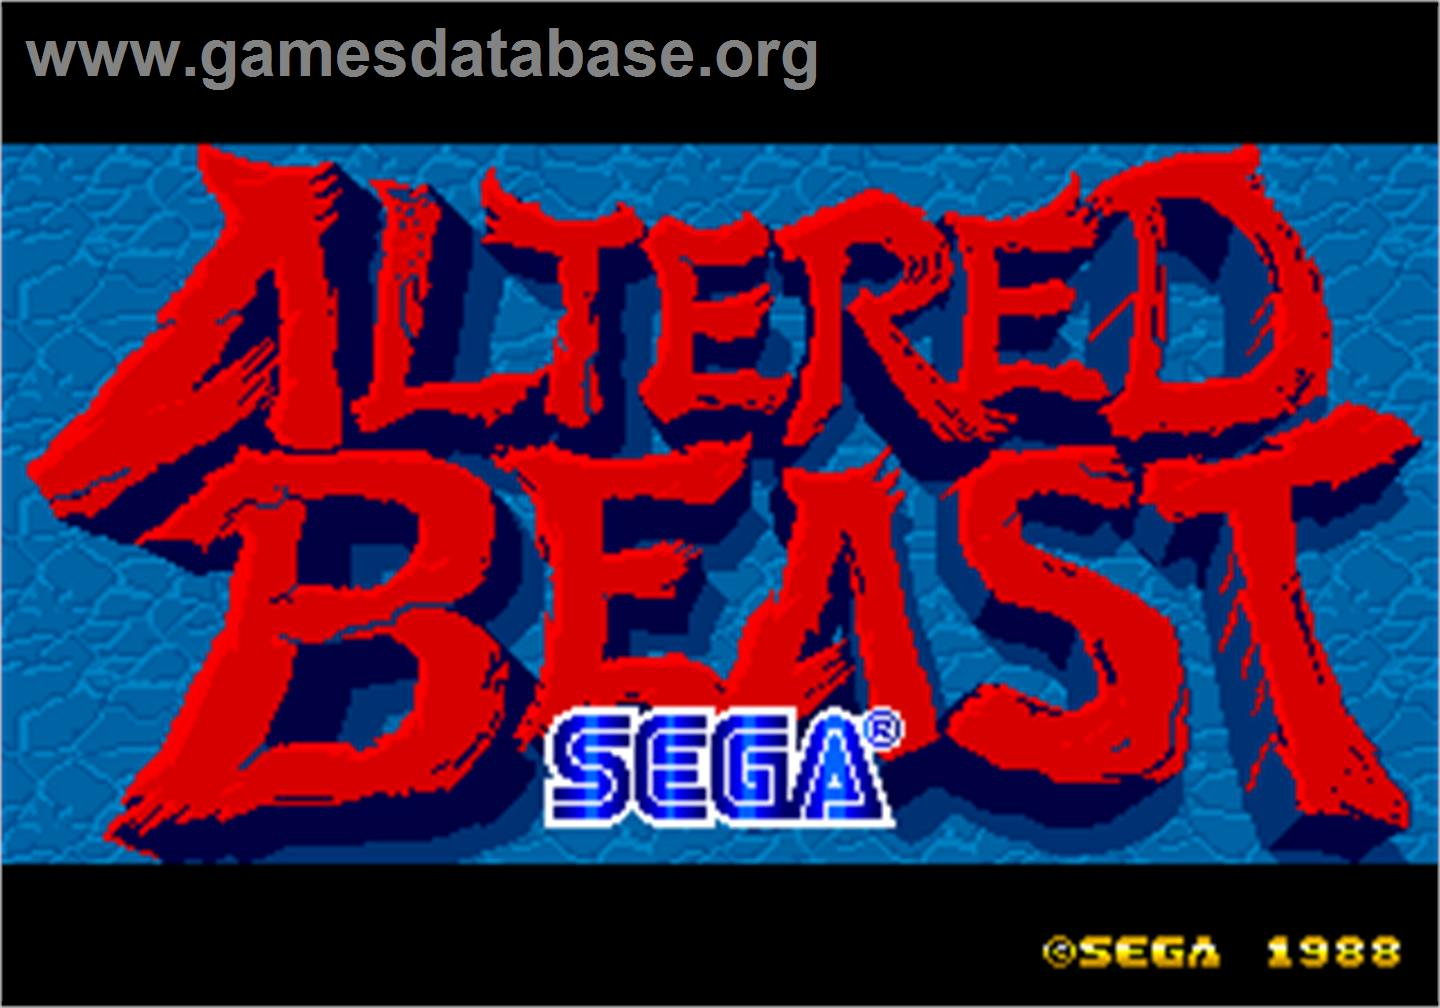 Altered beast arcade games database for Altered beast